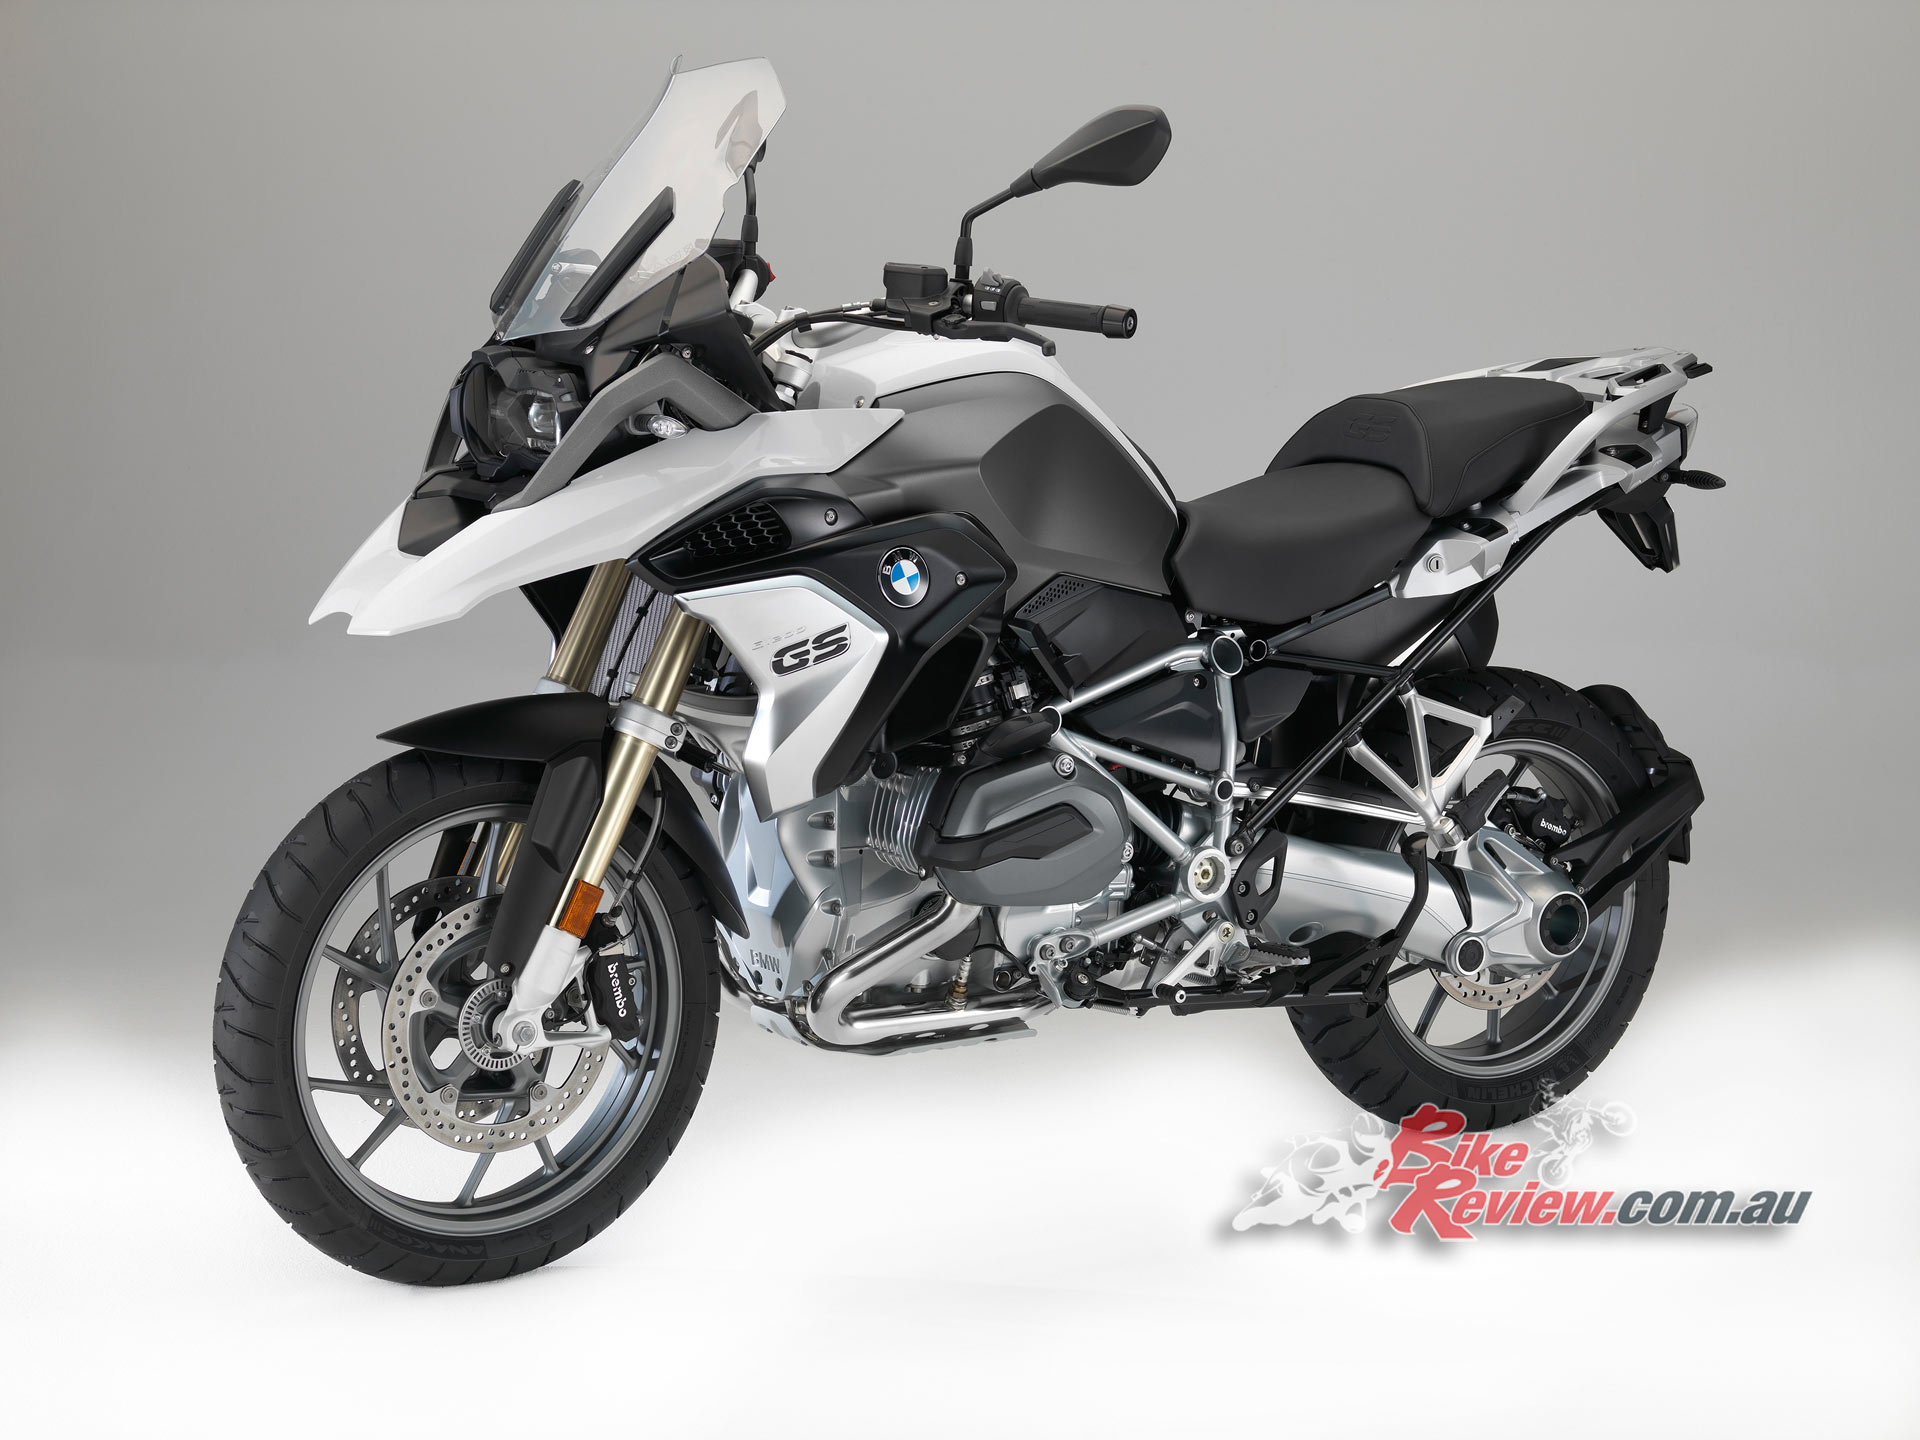 2017 bmw r 1200 gs unveiled at eicma bike review. Black Bedroom Furniture Sets. Home Design Ideas